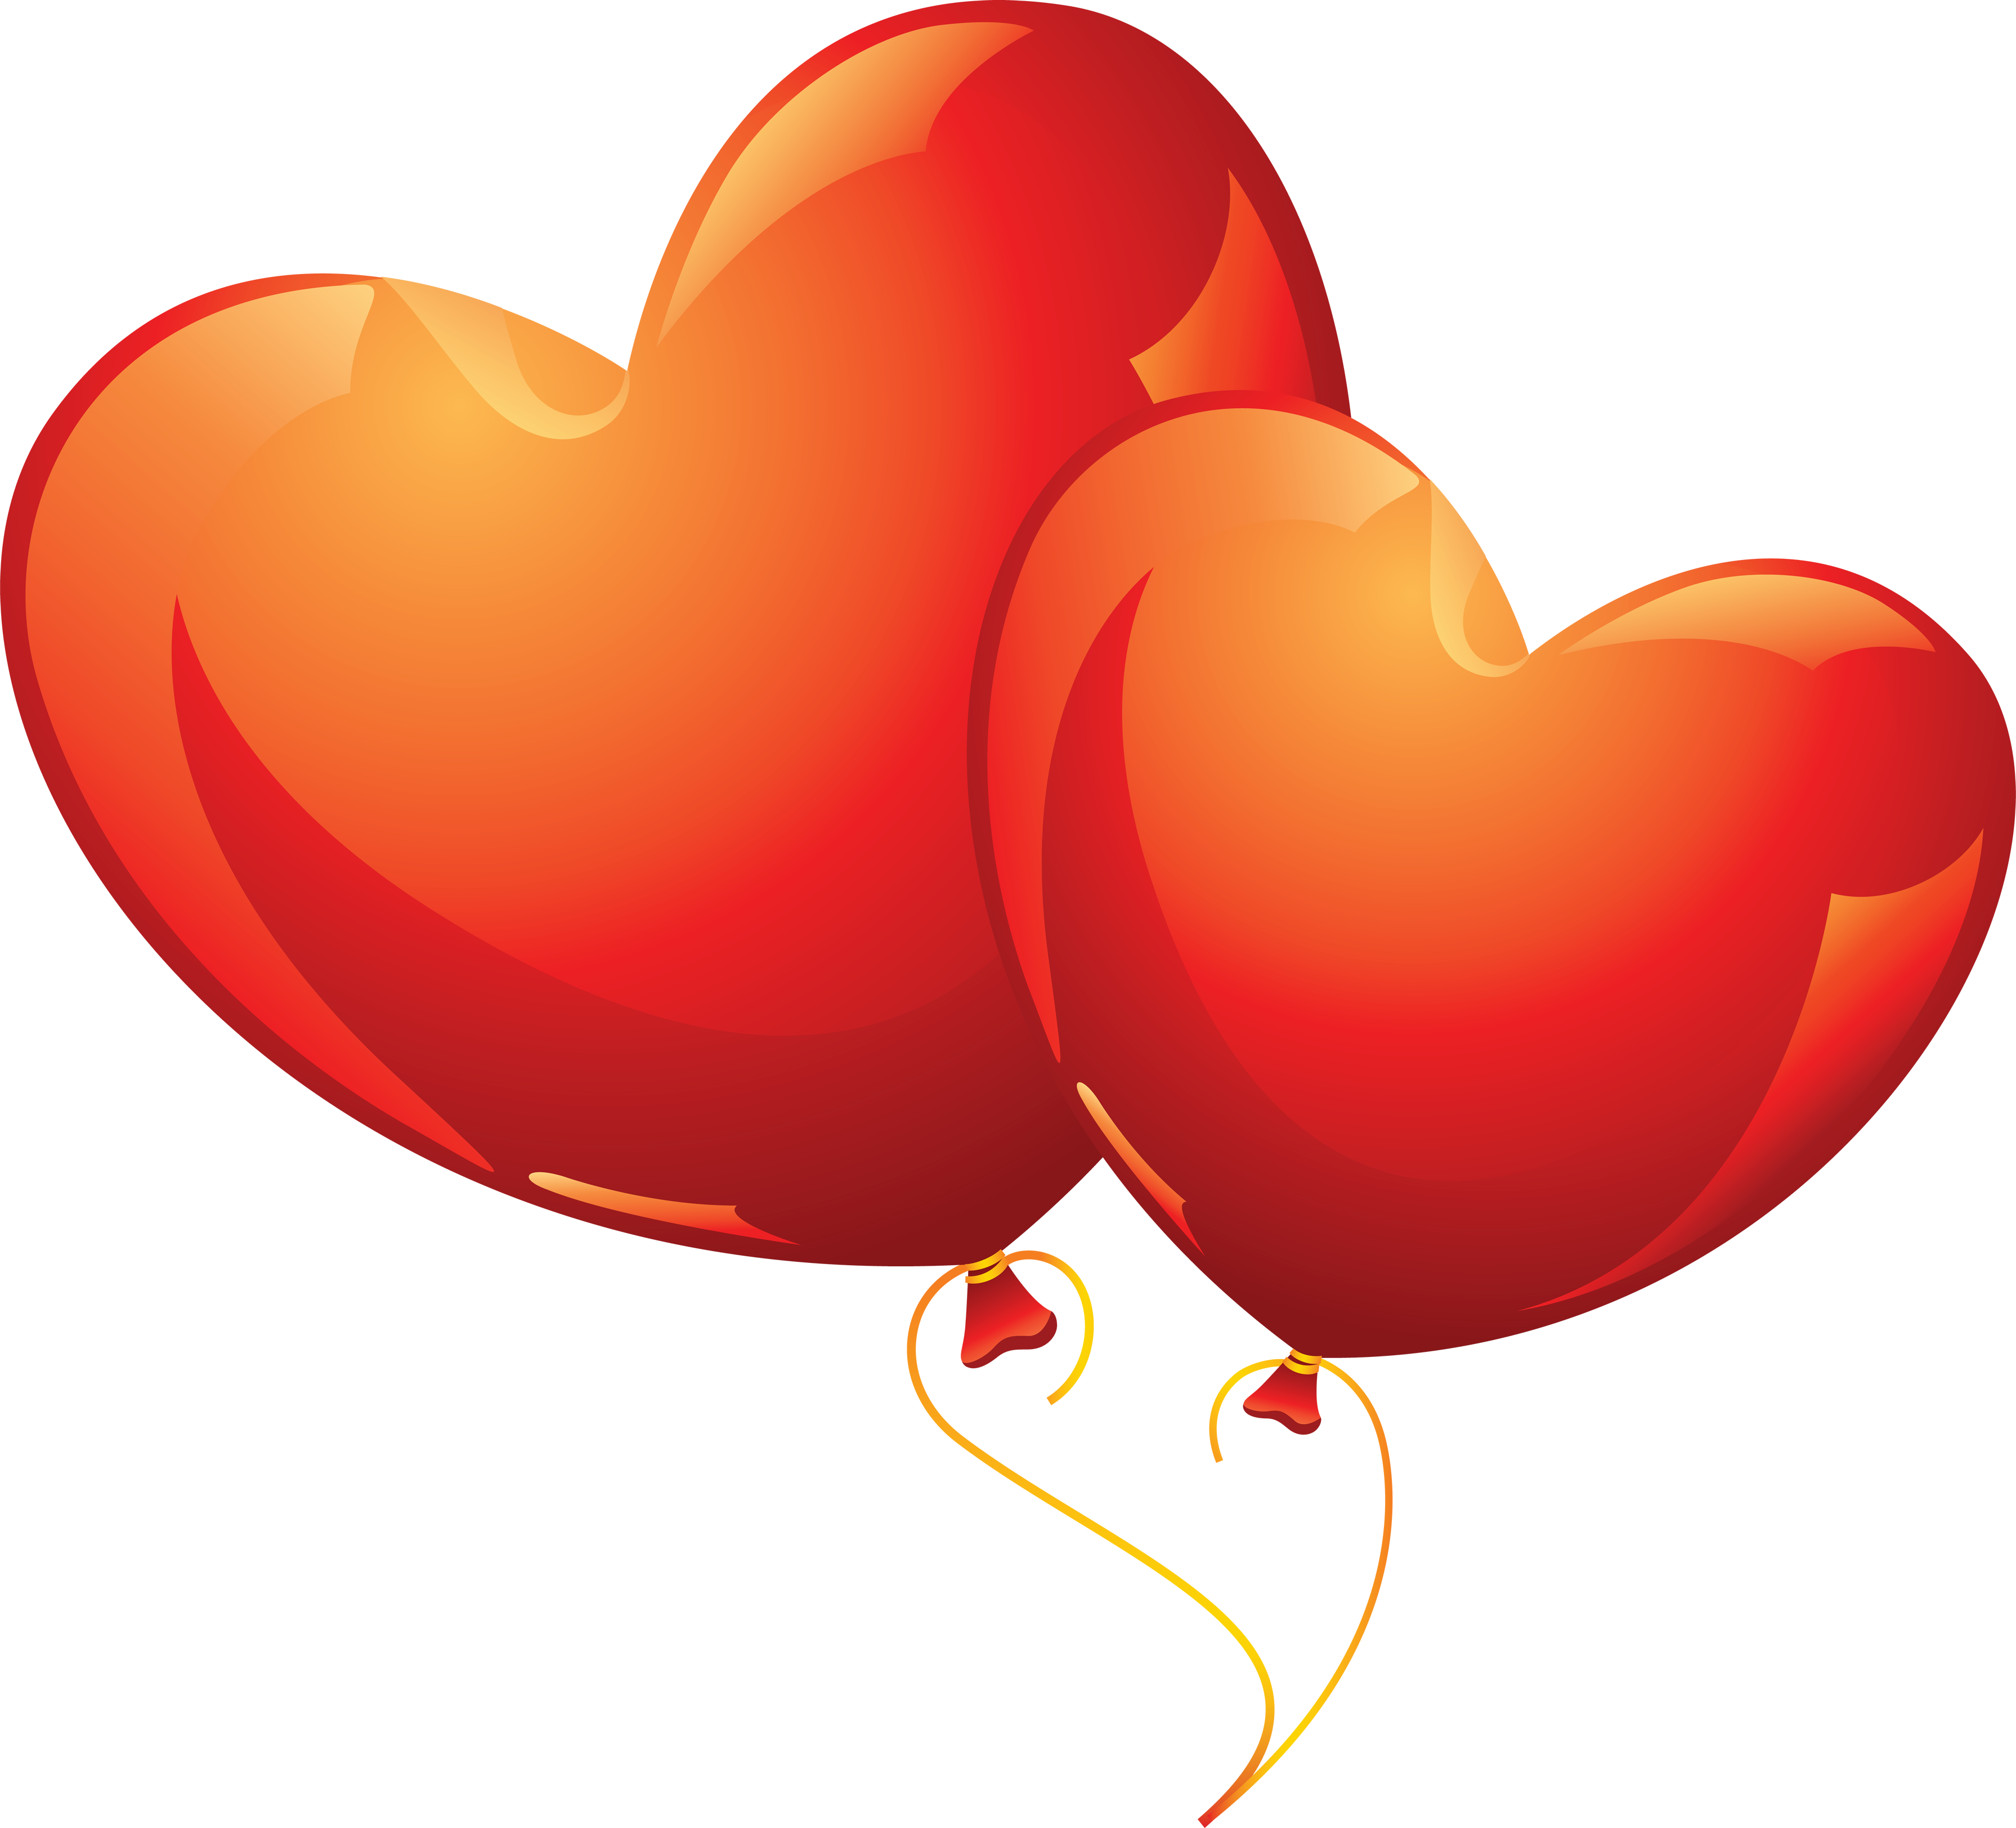 February clipart cute symbol. Fall in love with